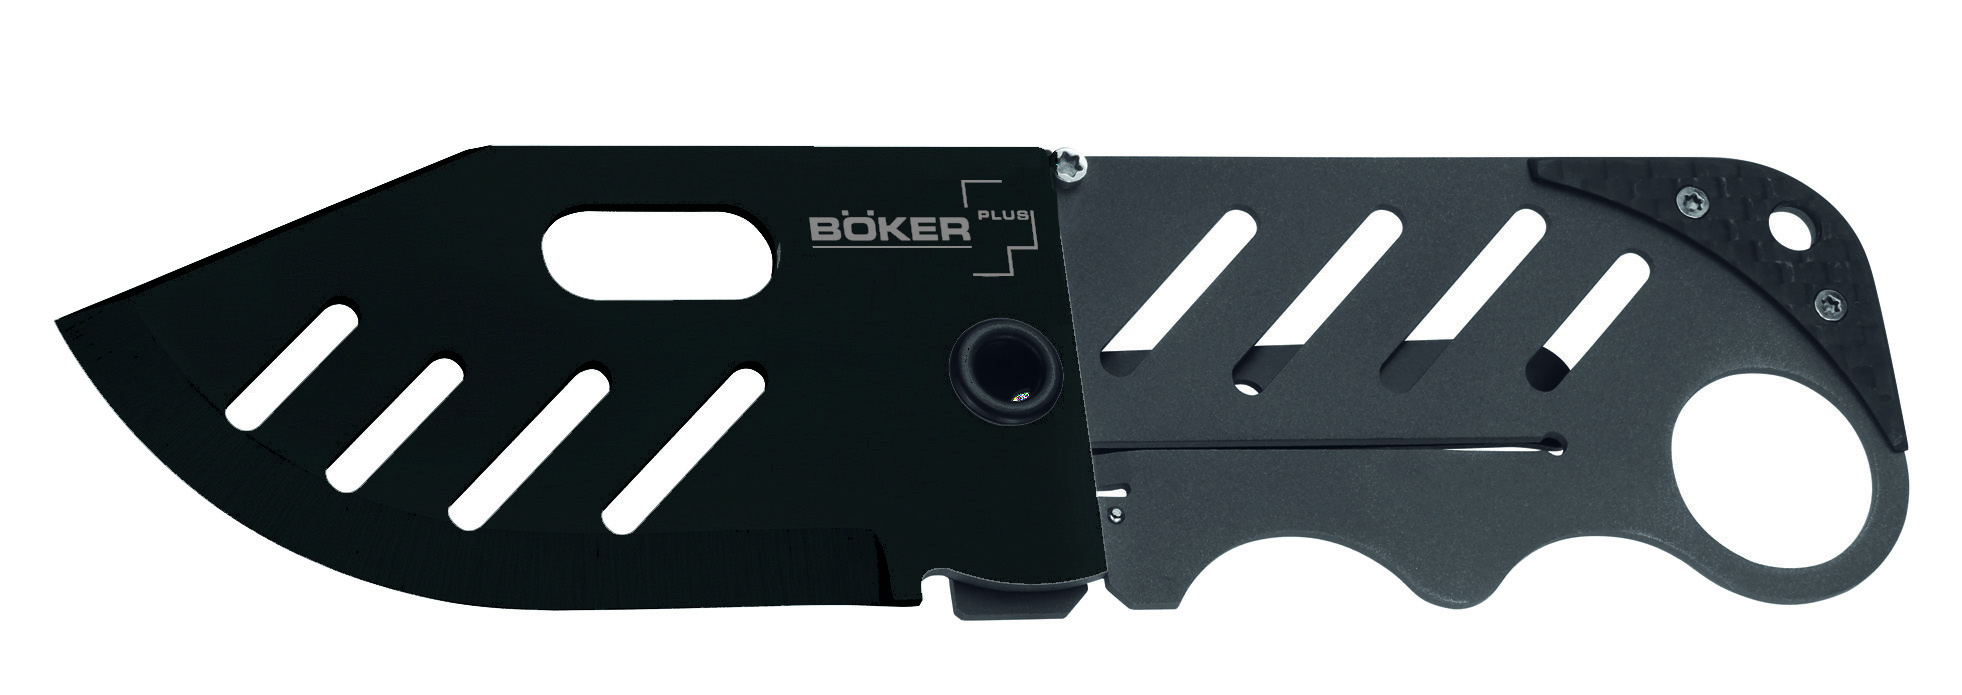 01BO011 - BOKER  PLUS CREDIT CARD KNIFE BLACK